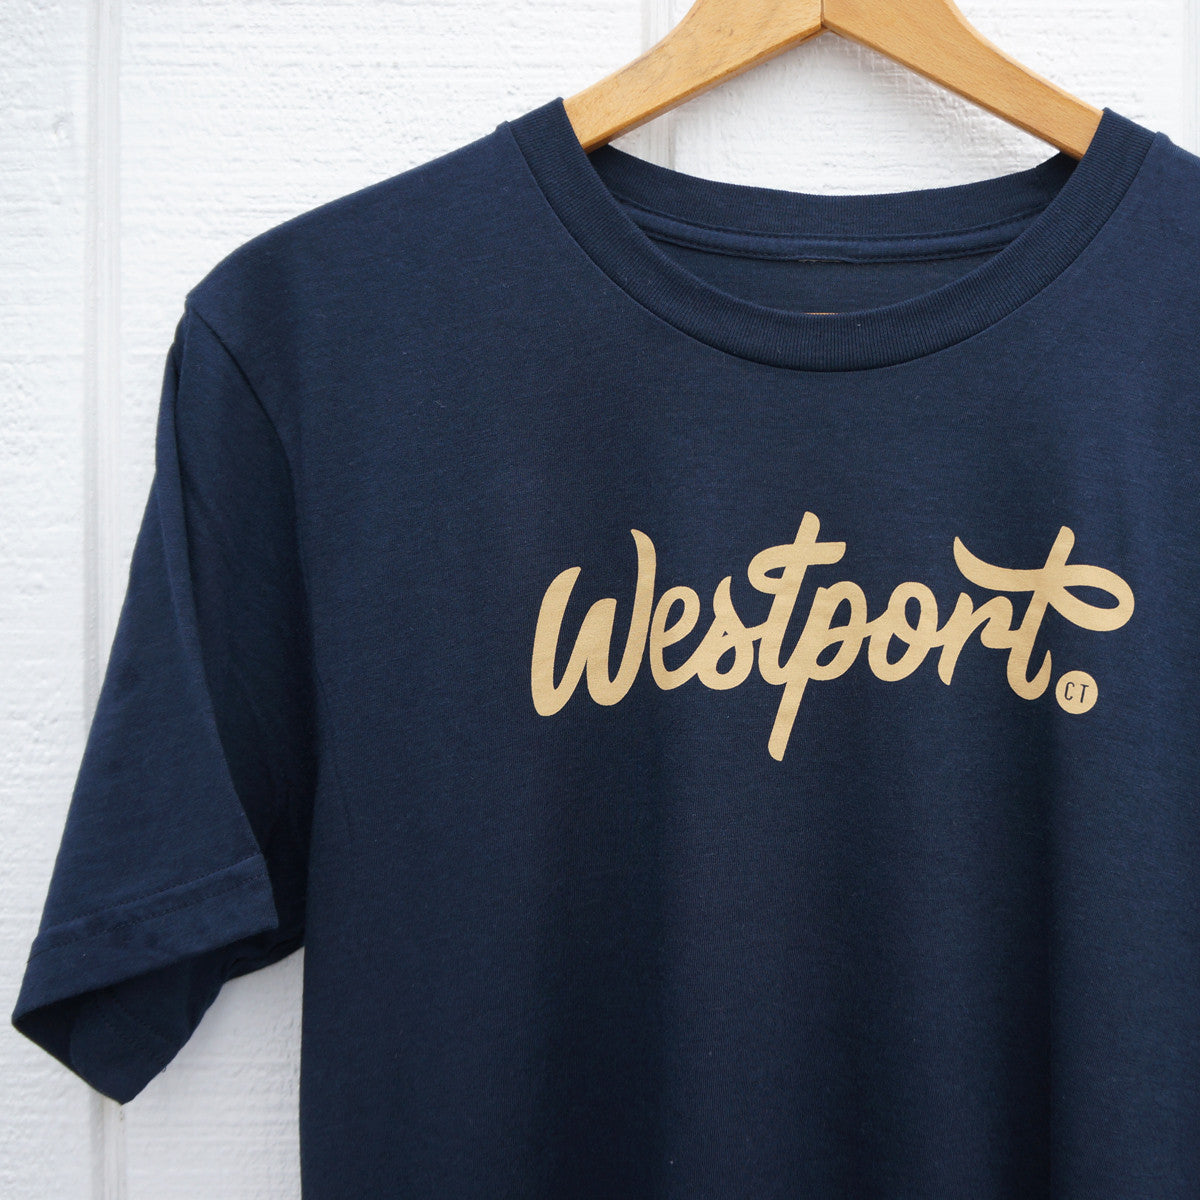 Westport T-Shirt by Townee - Westport Townee Tee (front)